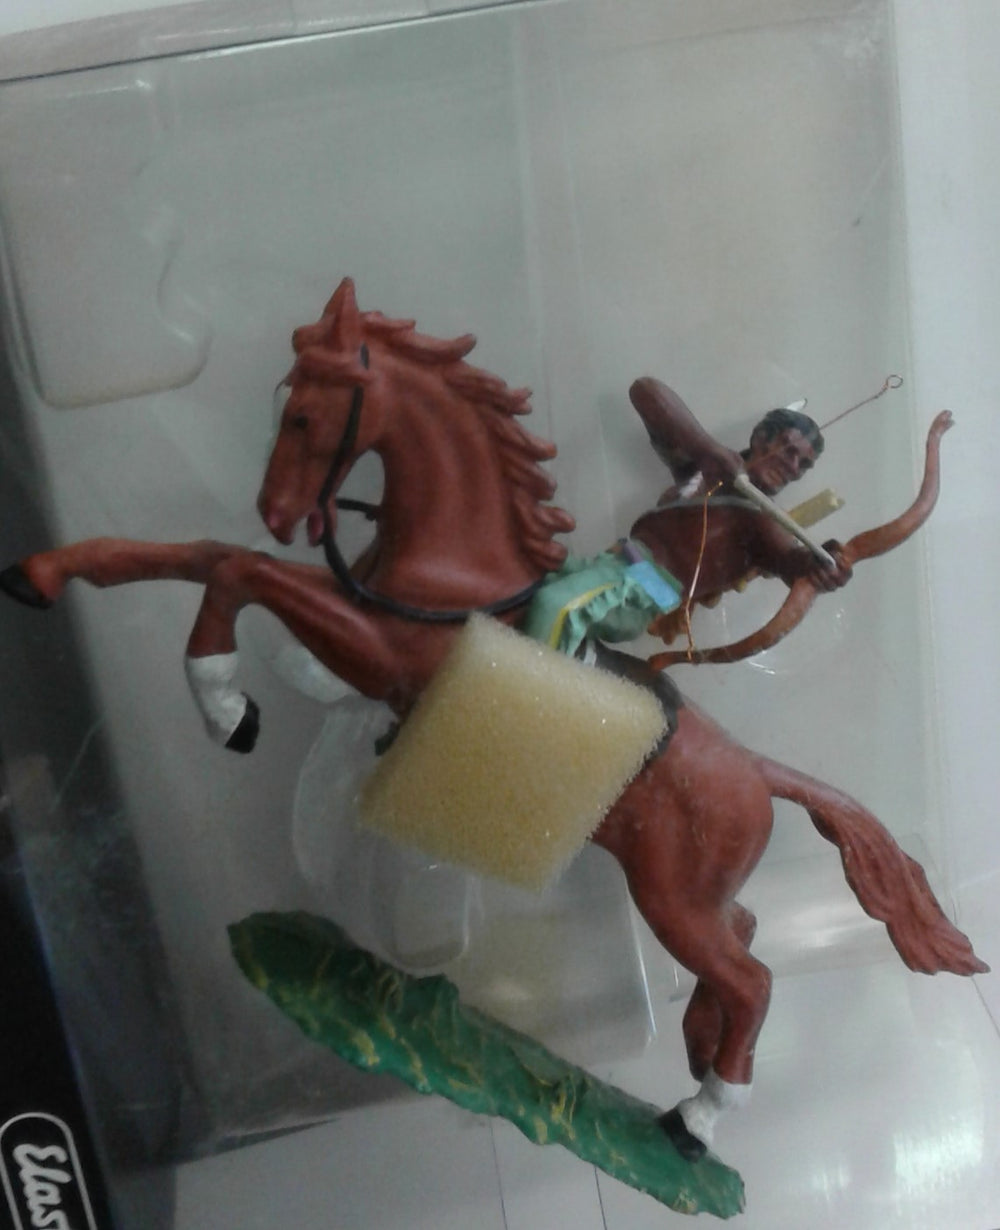 PREISER # 54655 - RIDING WITH BOW, 1:25 SCALE ELASTOLIN FIGURE